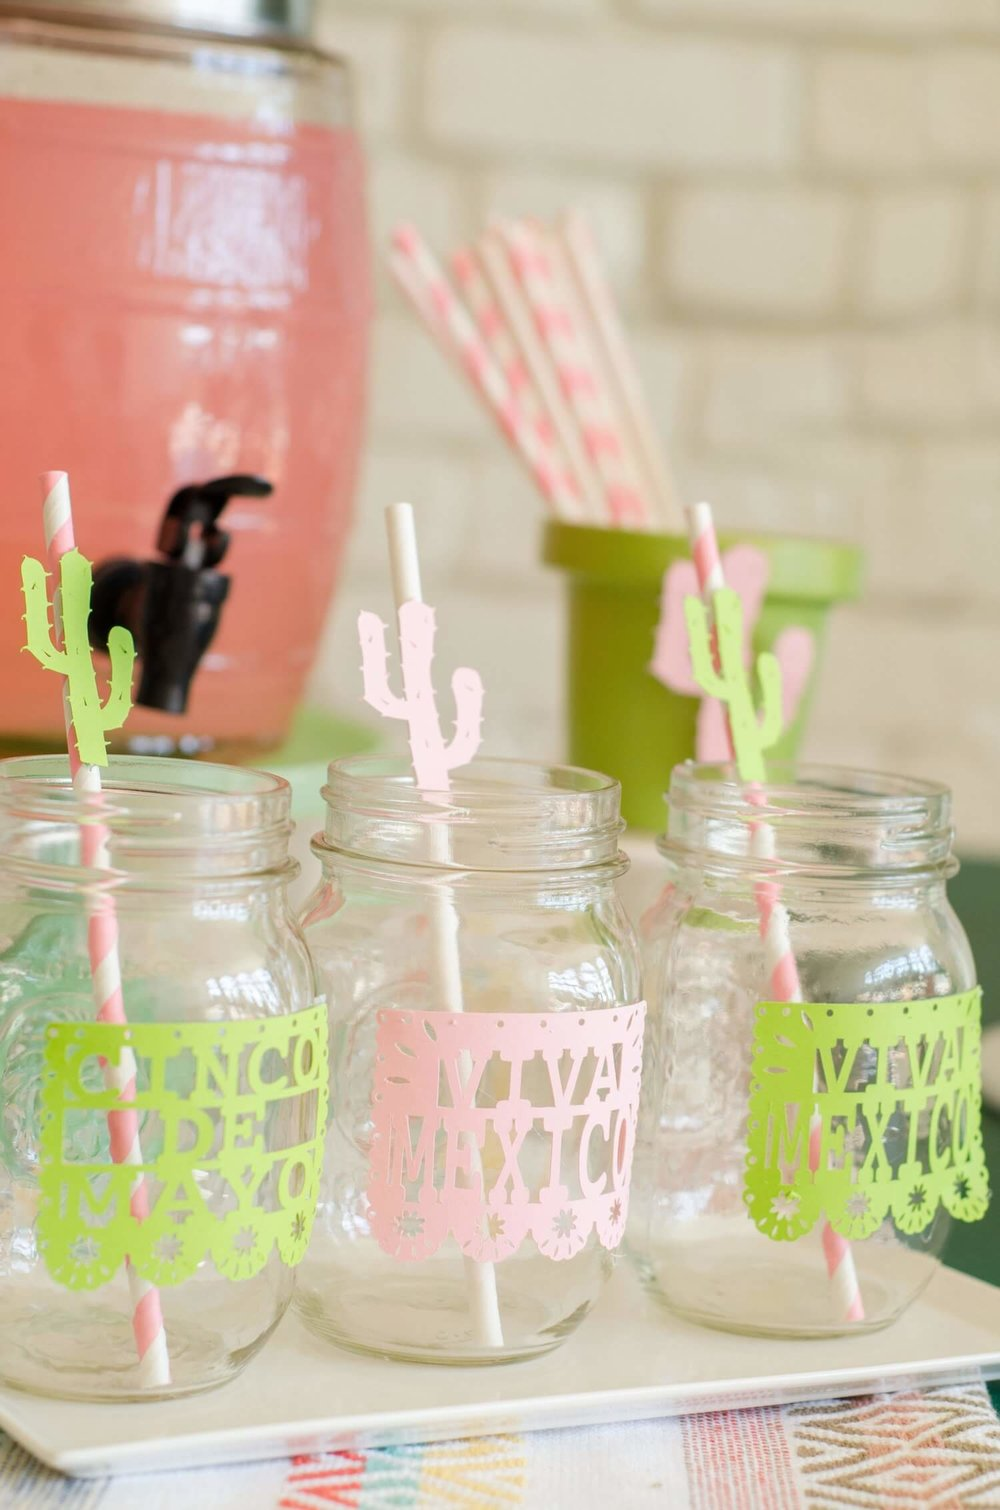 Cindo de Mayo Drink Station idea / Cinco de Mayo kids drinks / Cinco de mayo drinks idea / Sahuaro paper decor / Styled by Carolina from MINT Event Design / www.minteventdesign.com